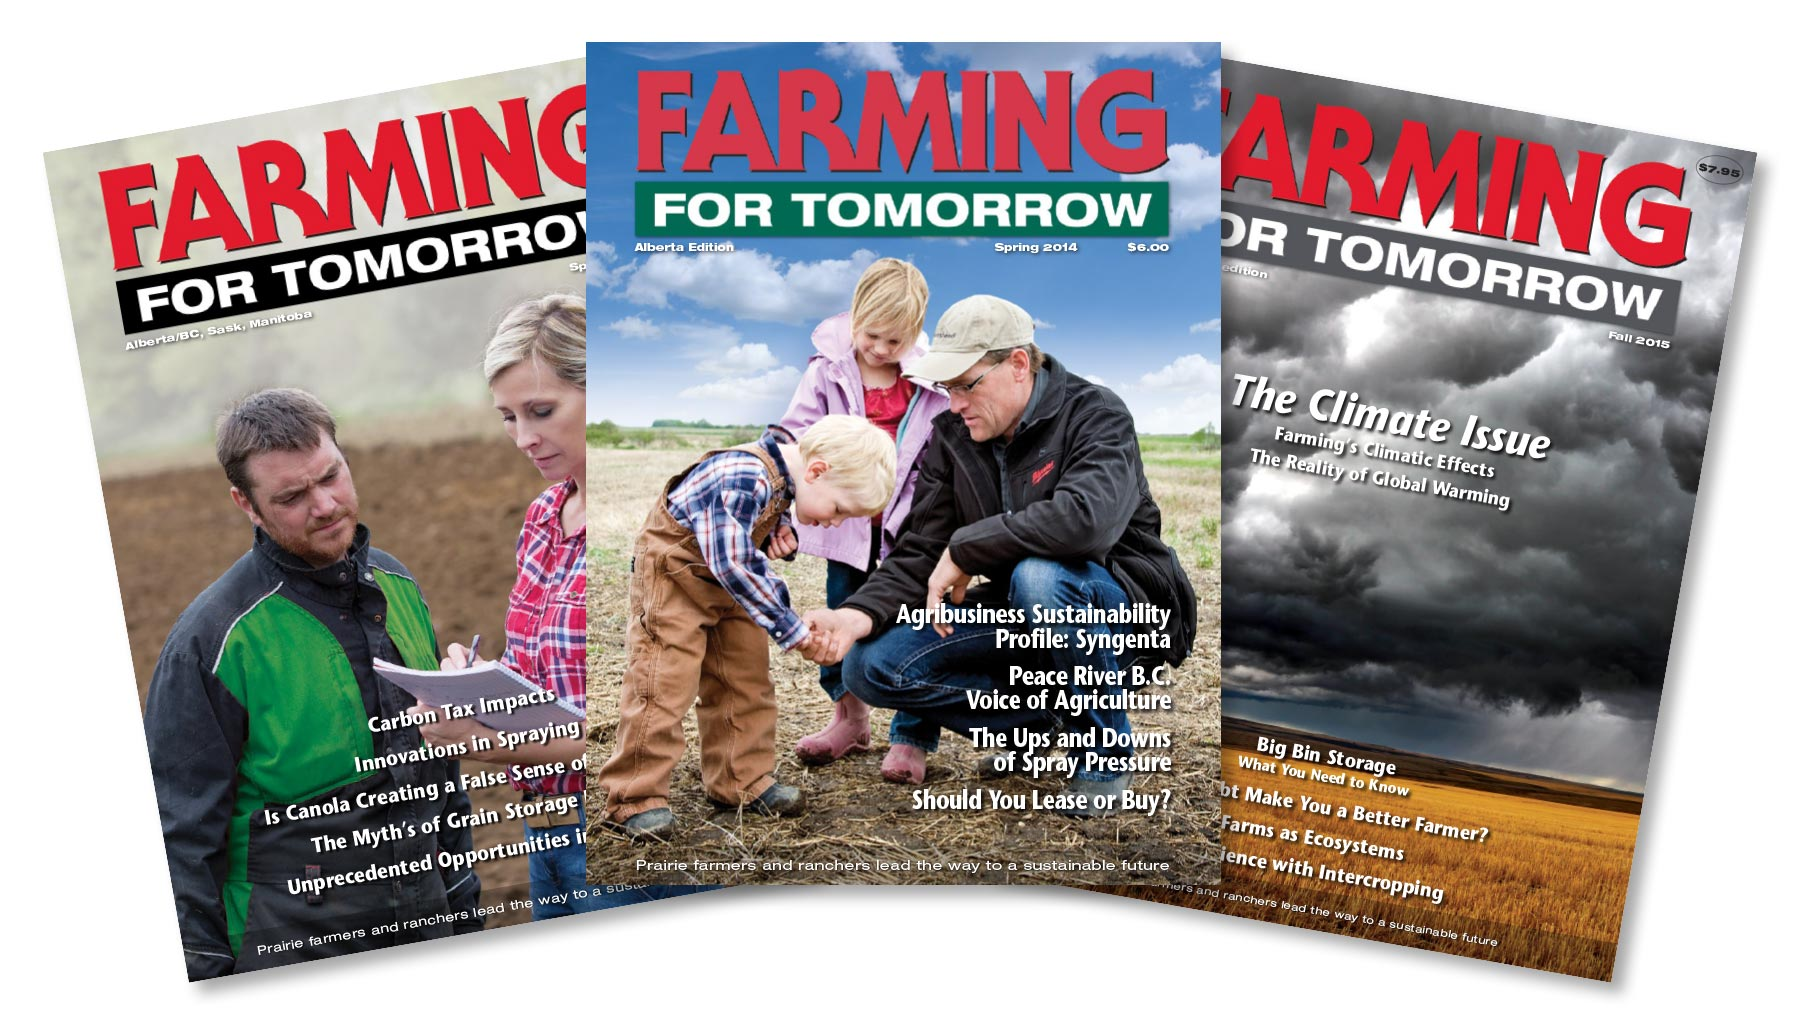 Farming for Tomorrow